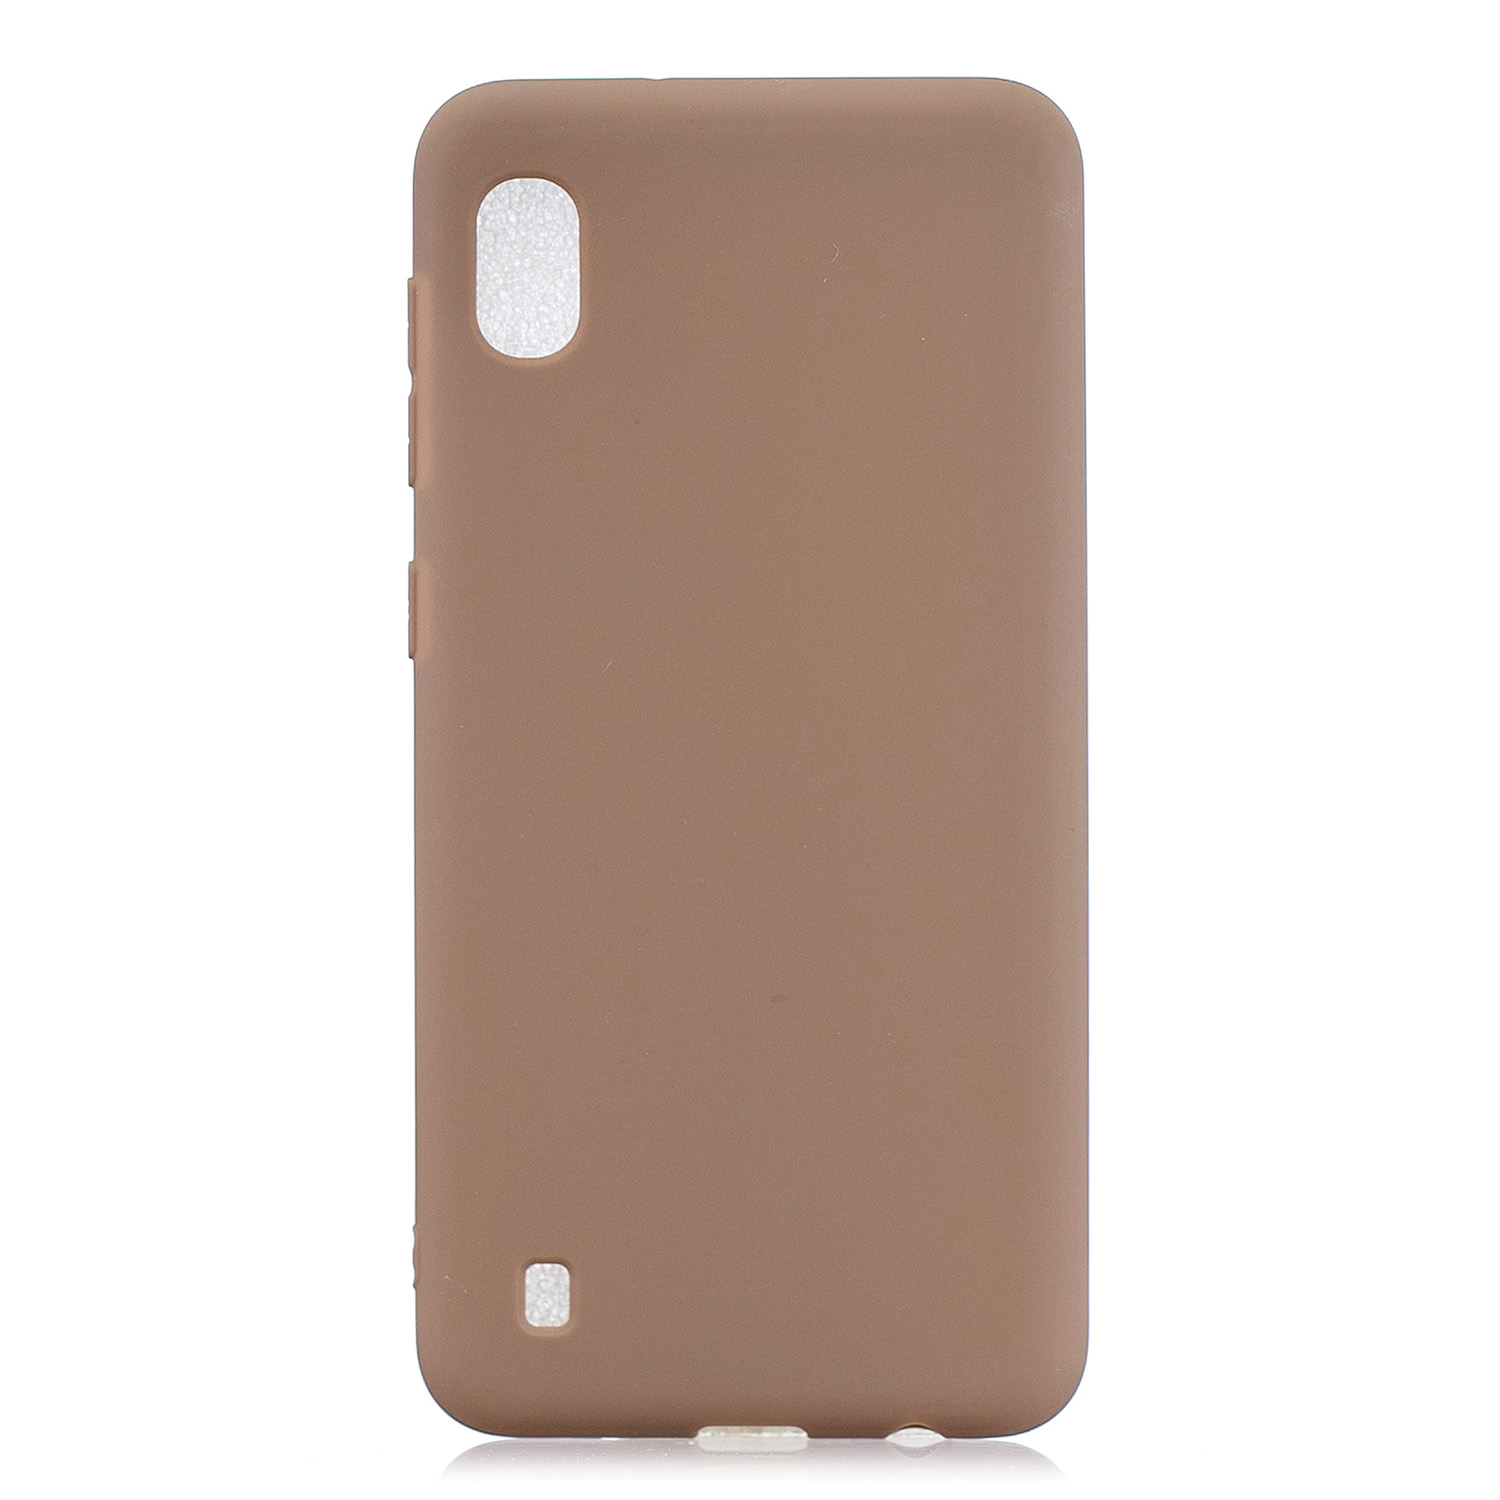 For Samsung A01/ A11/A21/A41/A51/A71/A81/A91 Mobile Phone Case Lovely Candy Color Matte TPU Anti-scratch Non-slip Protective Cover Back Case 9 brown